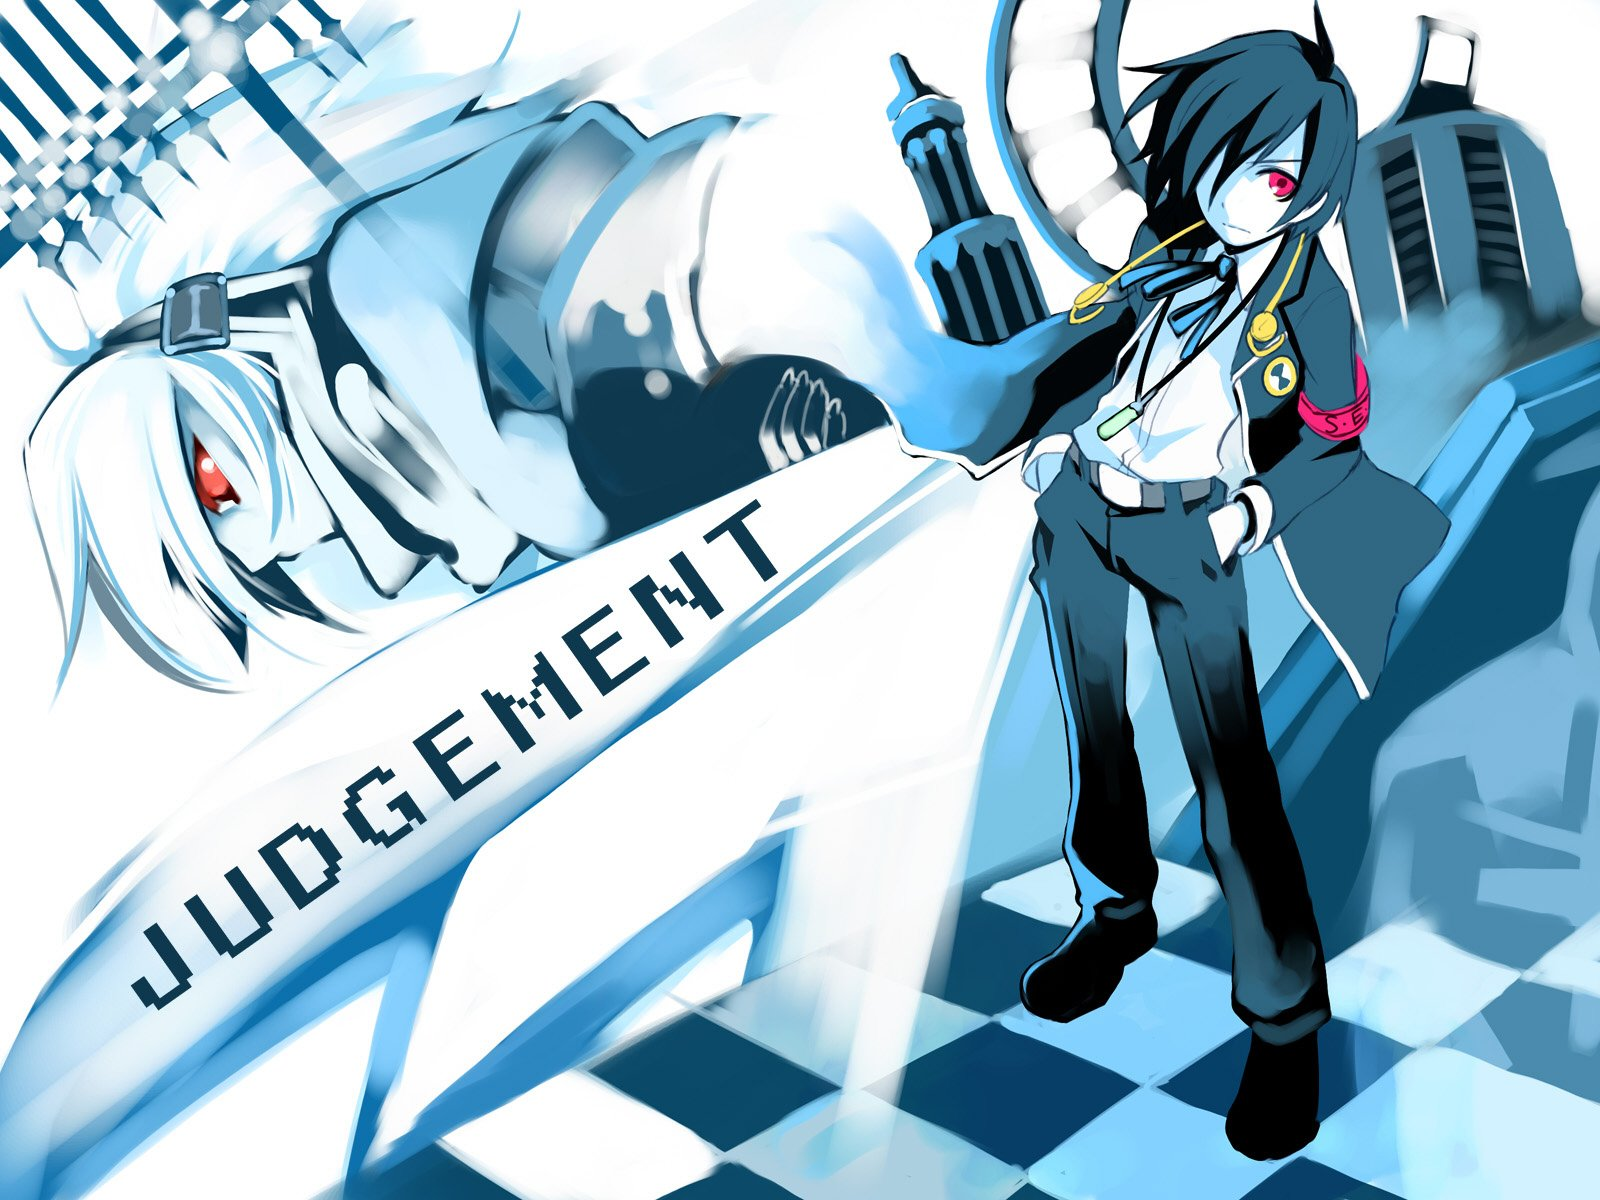 154 Persona 3 Hd Wallpapers Background Images Wallpaper Abyss